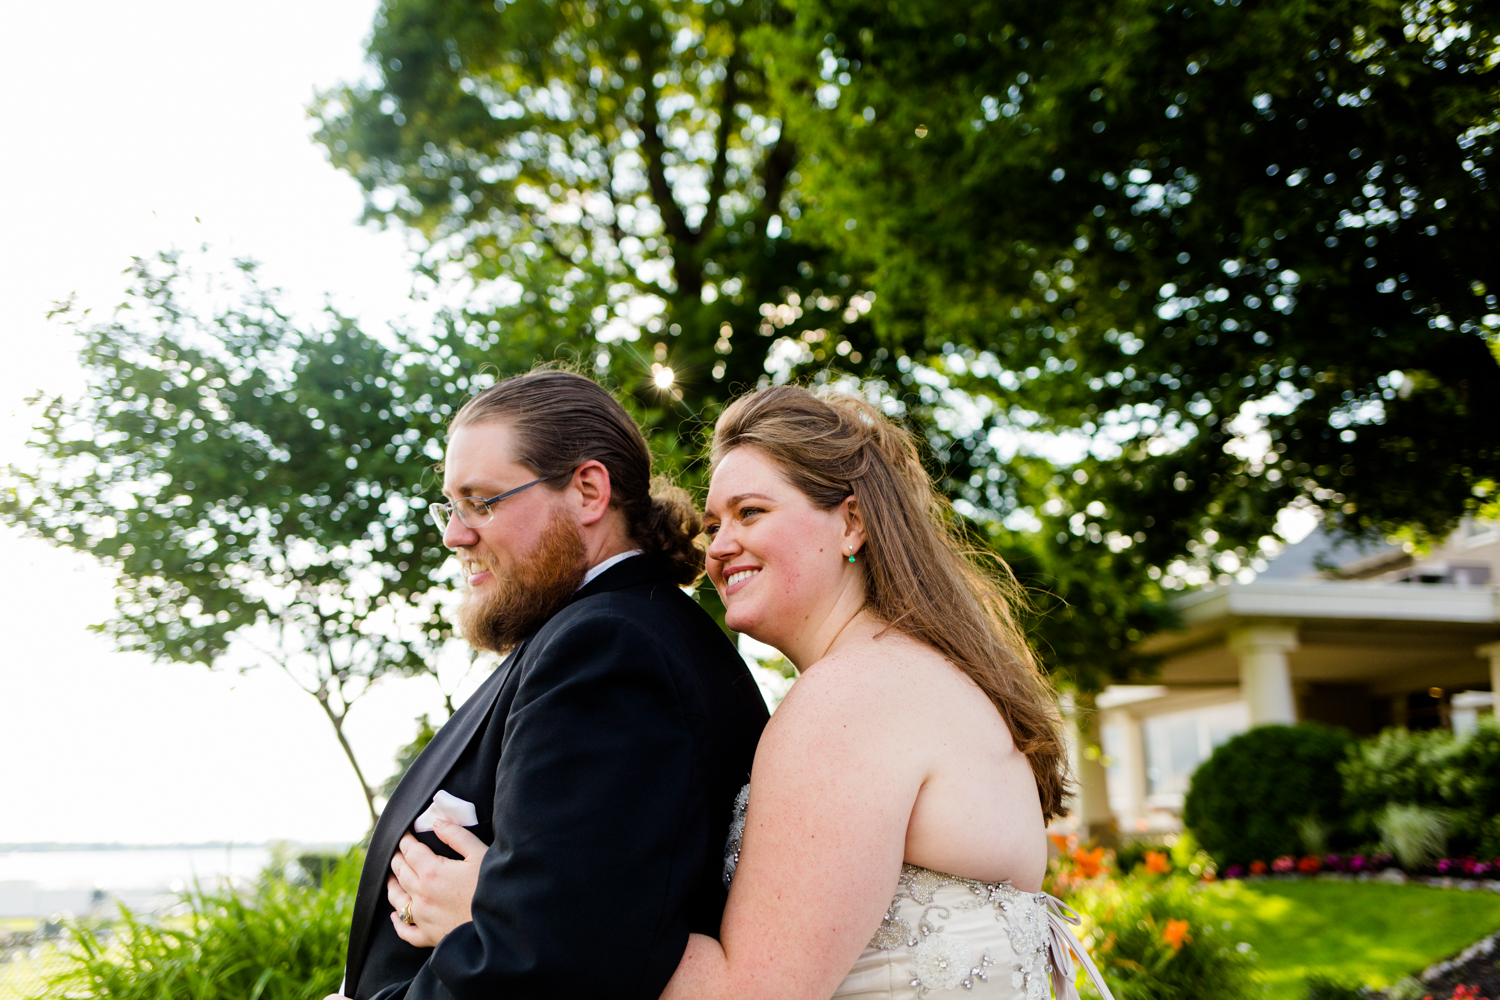 Portrait of bride hugging groom from behind. They are both smiling.